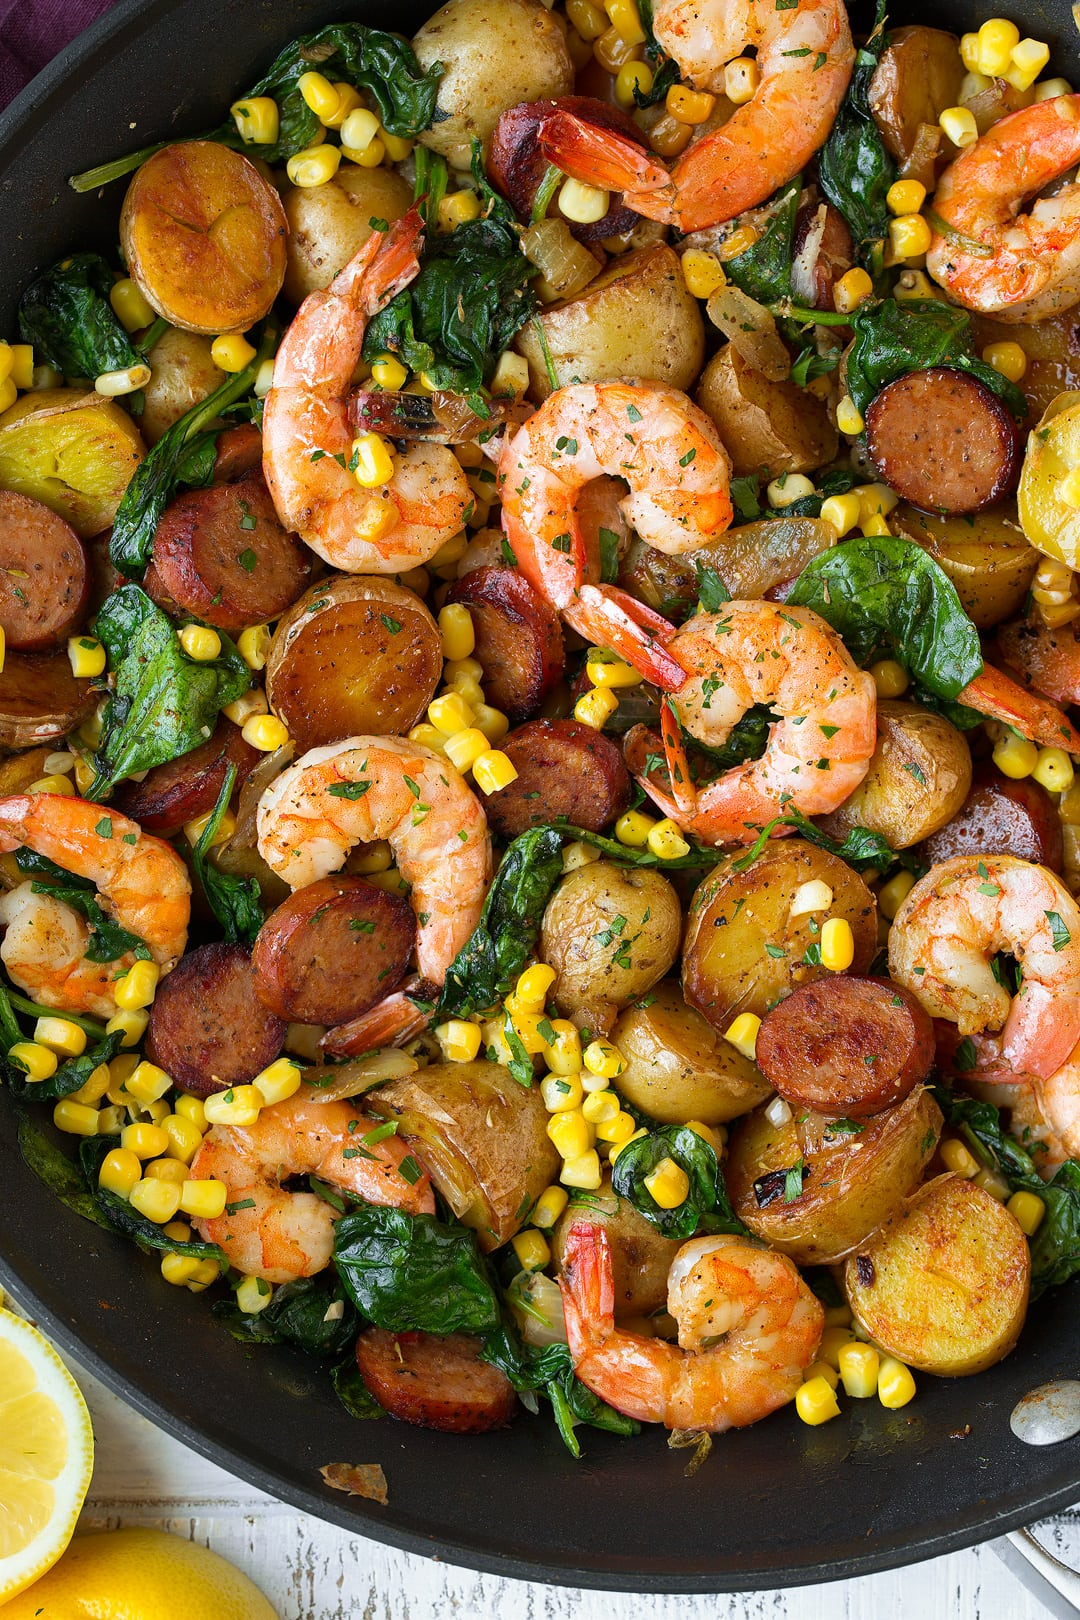 Shrimp Boil made in a skillet